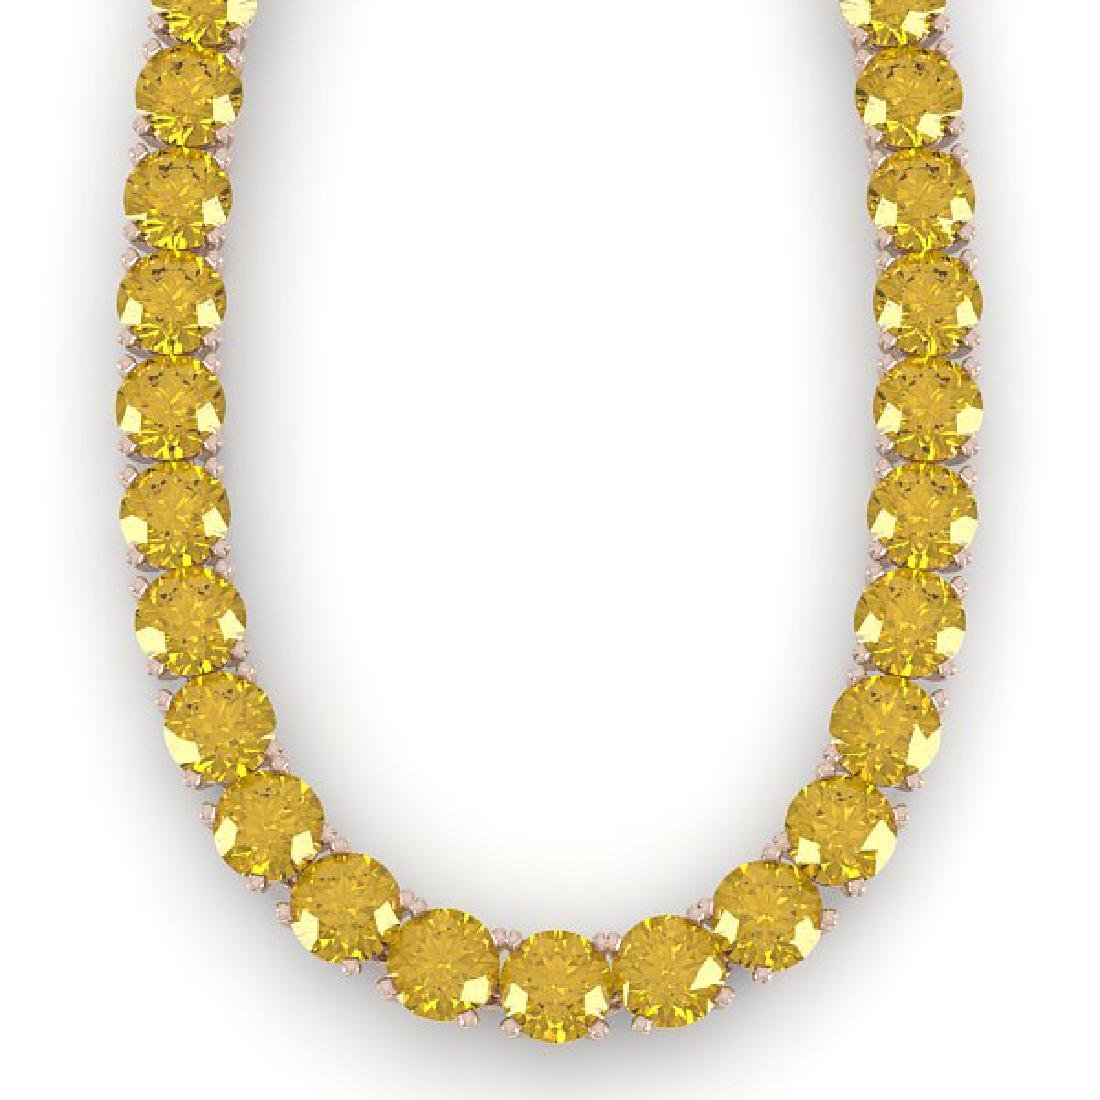 30 CTW Certified Fancy Yellow SI Diamond Necklace 18K